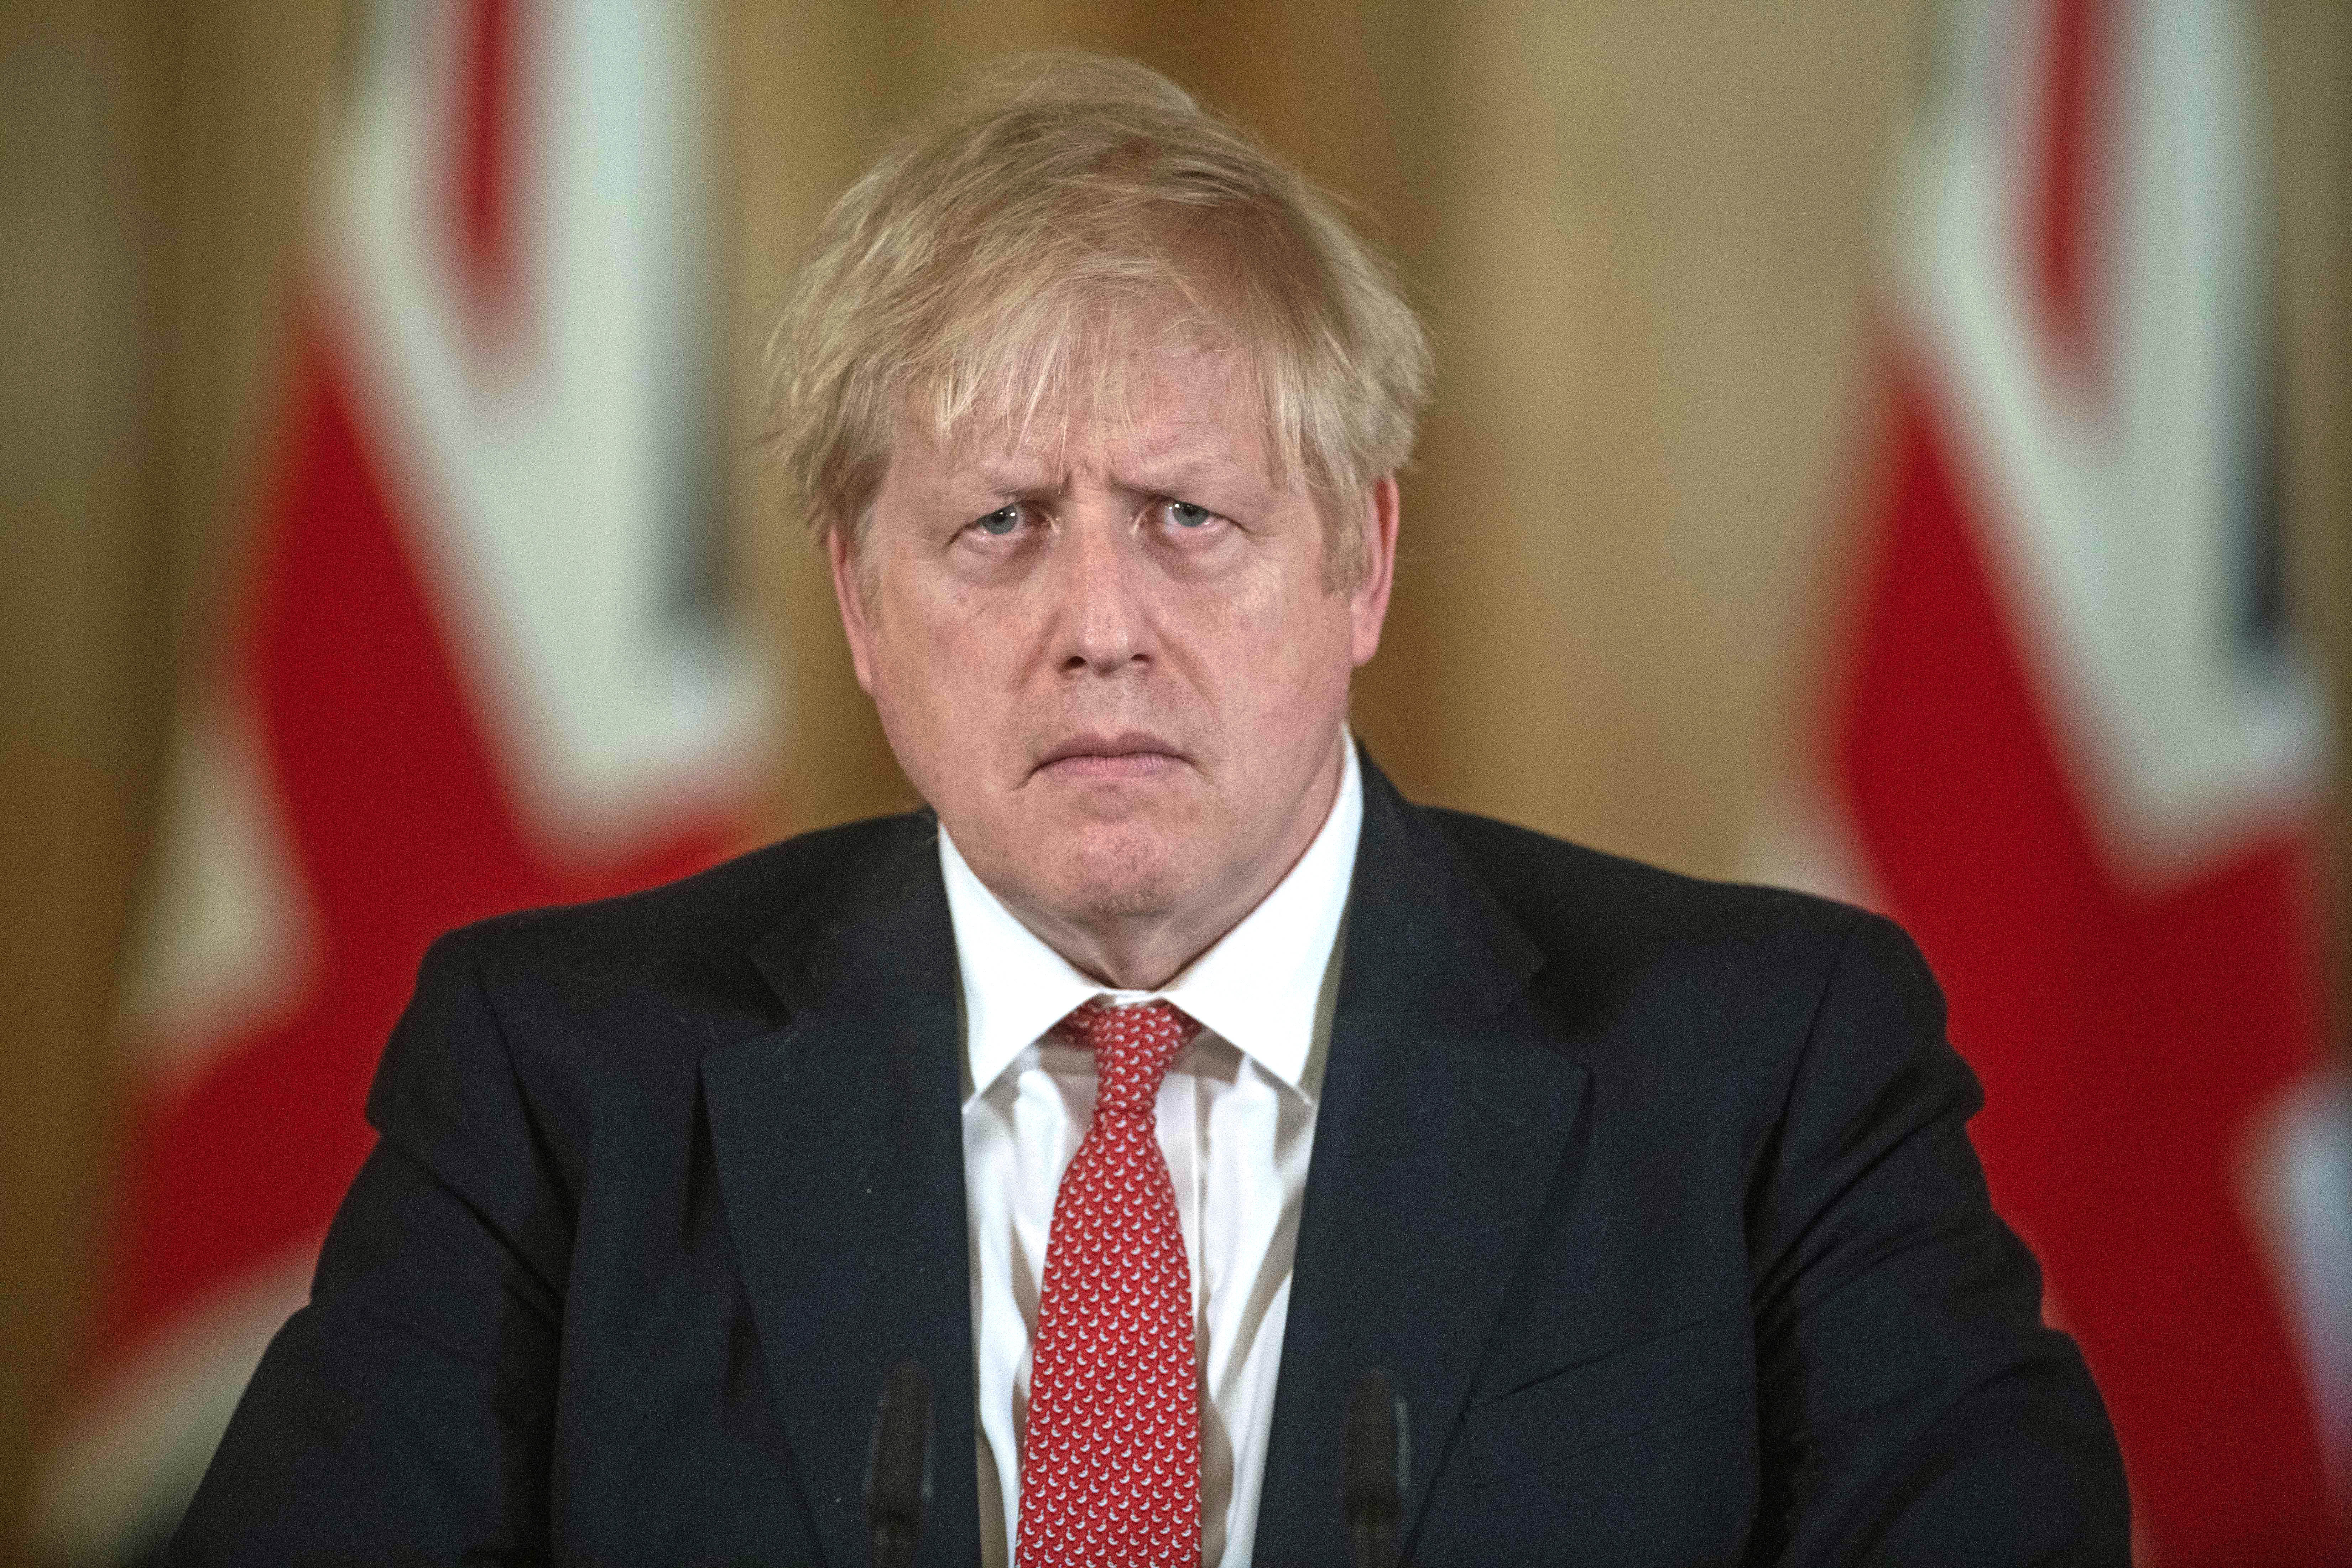 File photo dated 20/03/2020 of Boris Johnson who is set to return to work on Monday, but in the three weeks the Prime Minister has been away the battle against coronavirus has greatly changed.